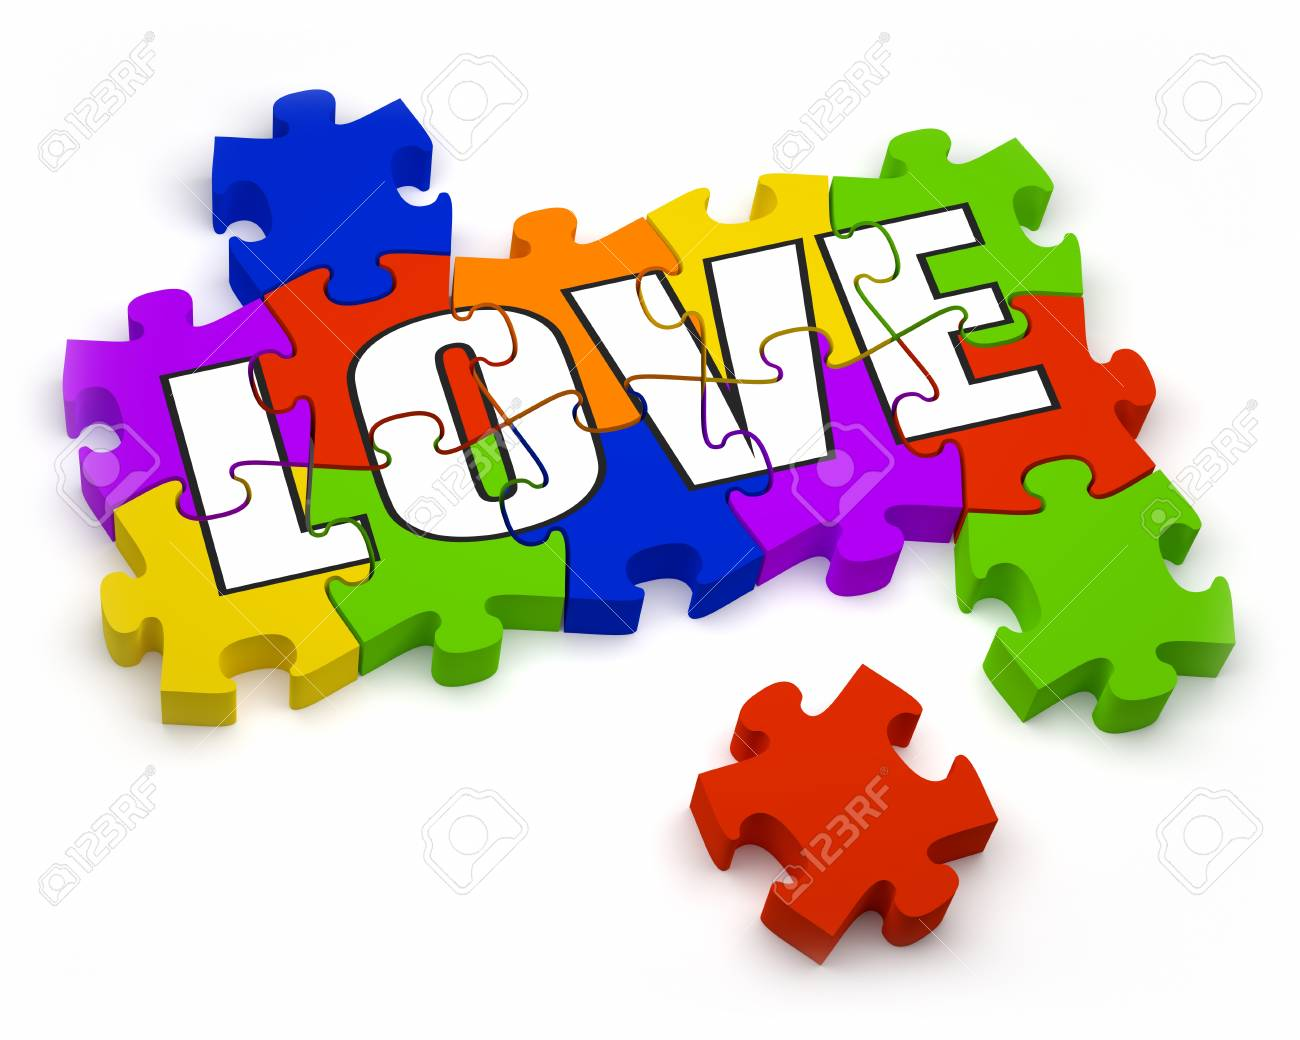 3D jigsaw pieces with text  Part of a series Stock Photo - 15873903